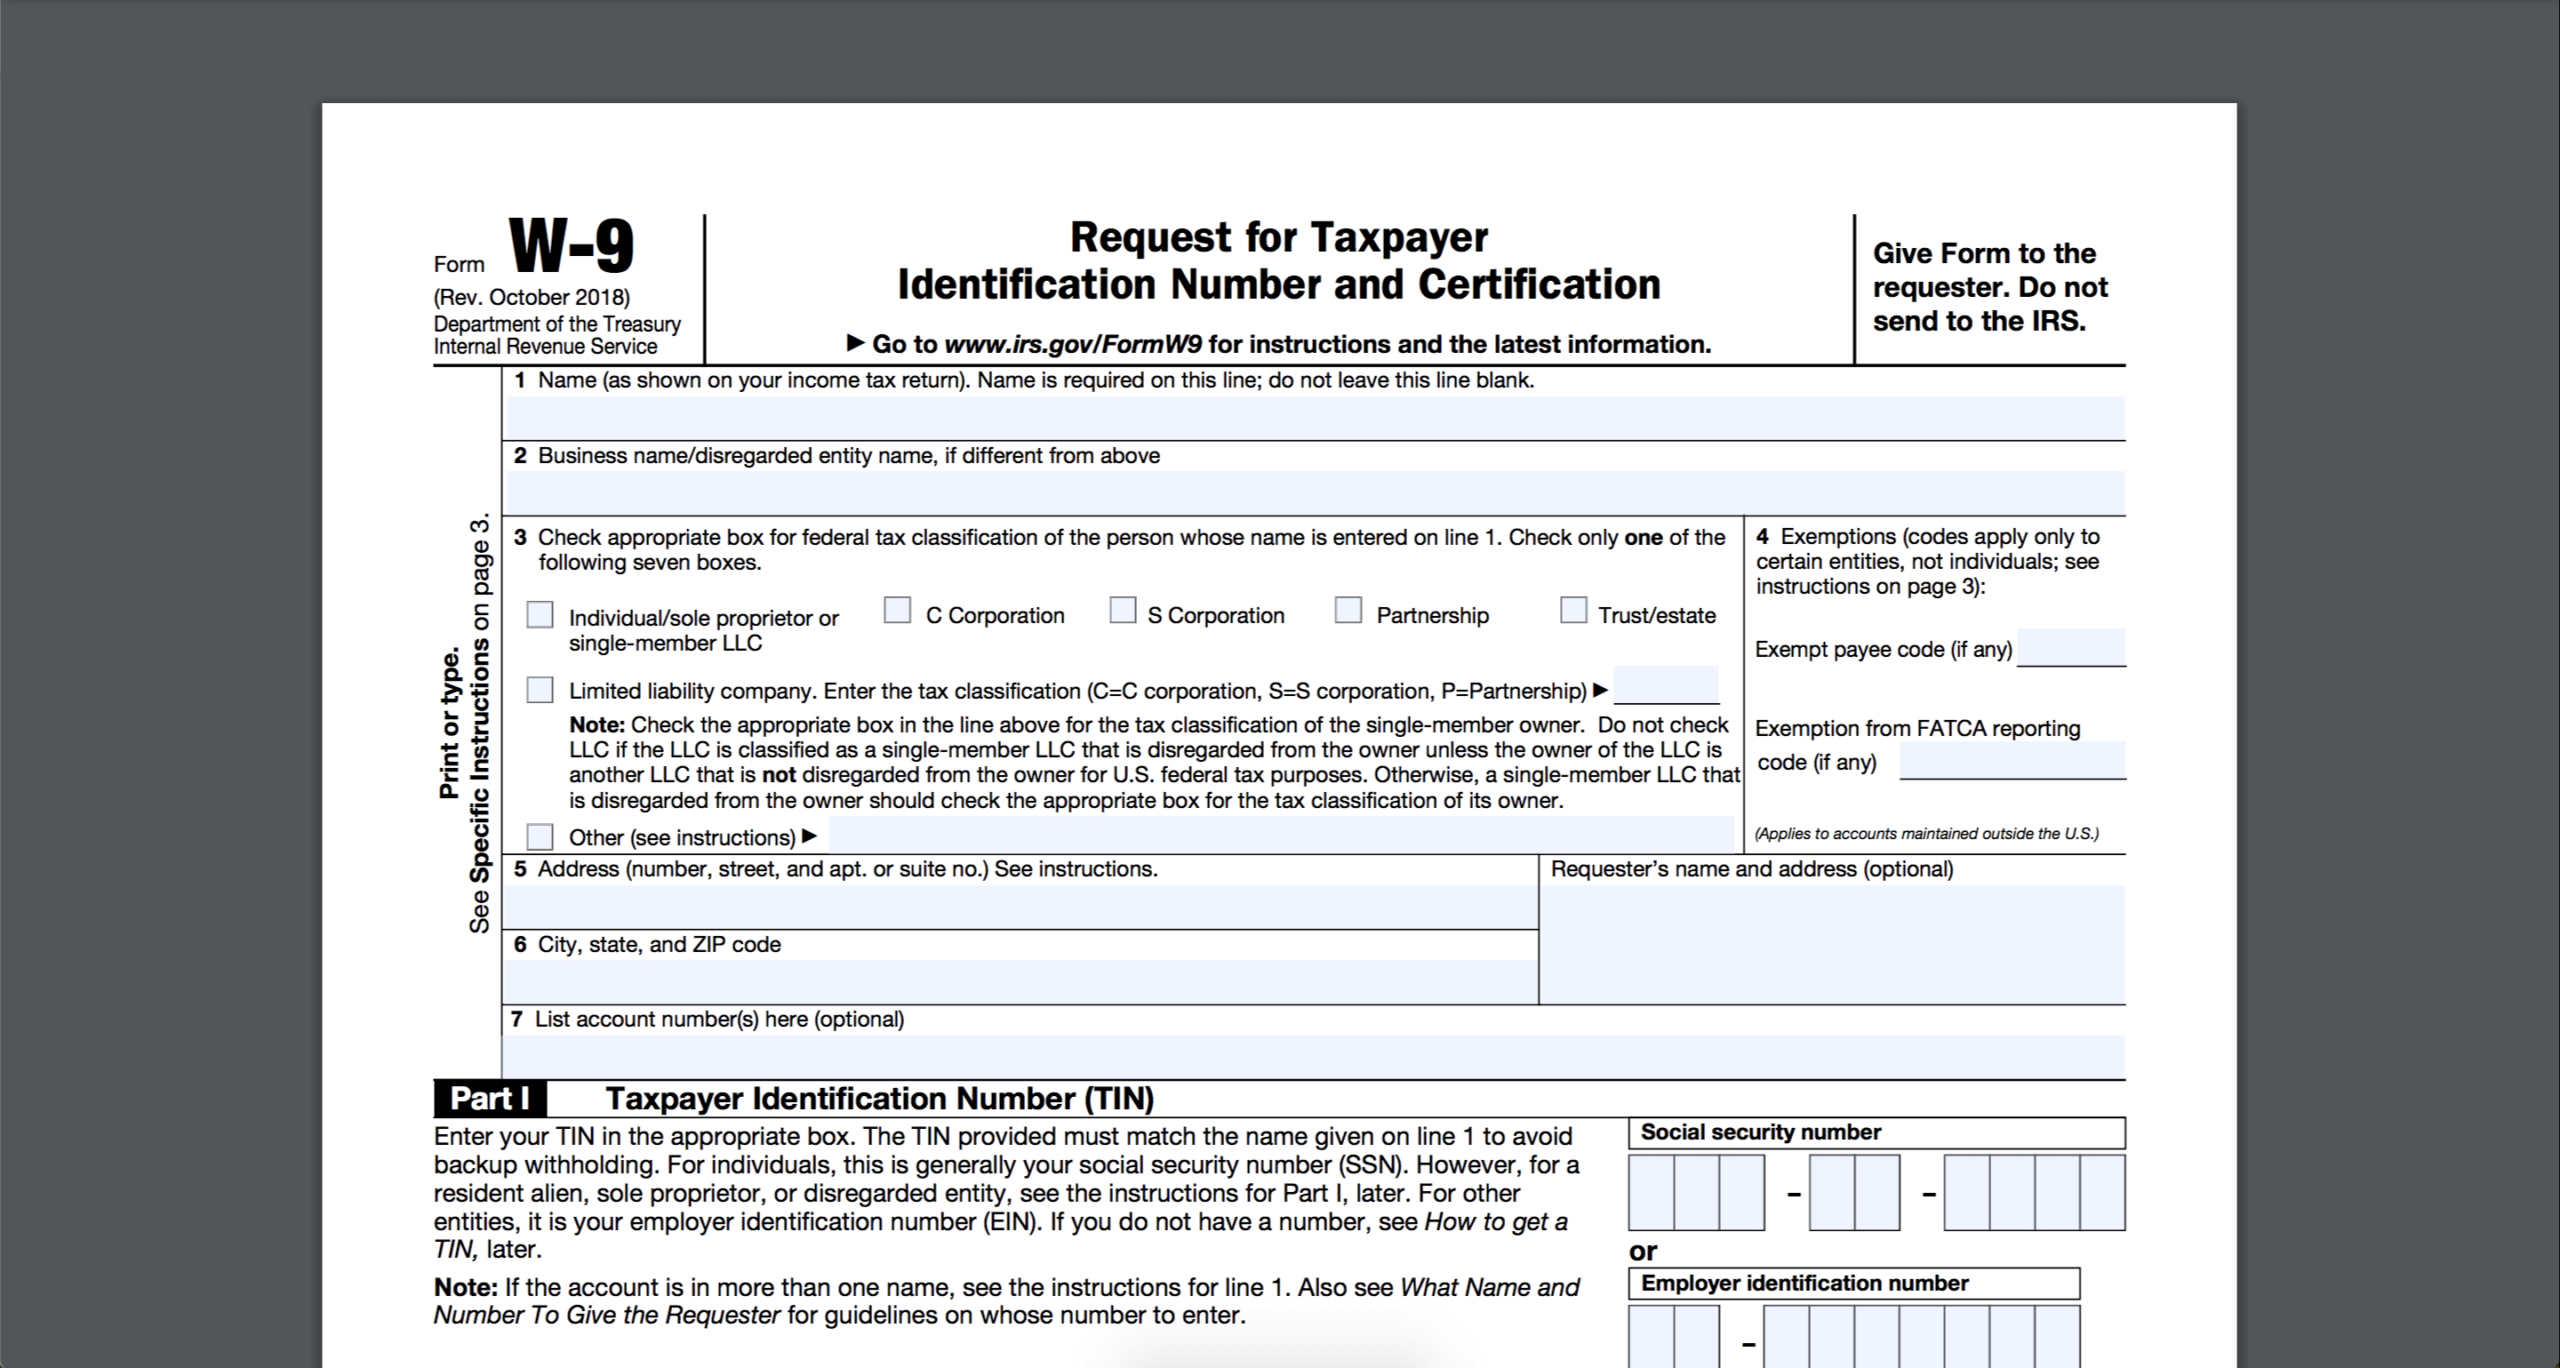 How To Fill Out And Sign Your W-9 Form Online intended for W 9 Form To Print